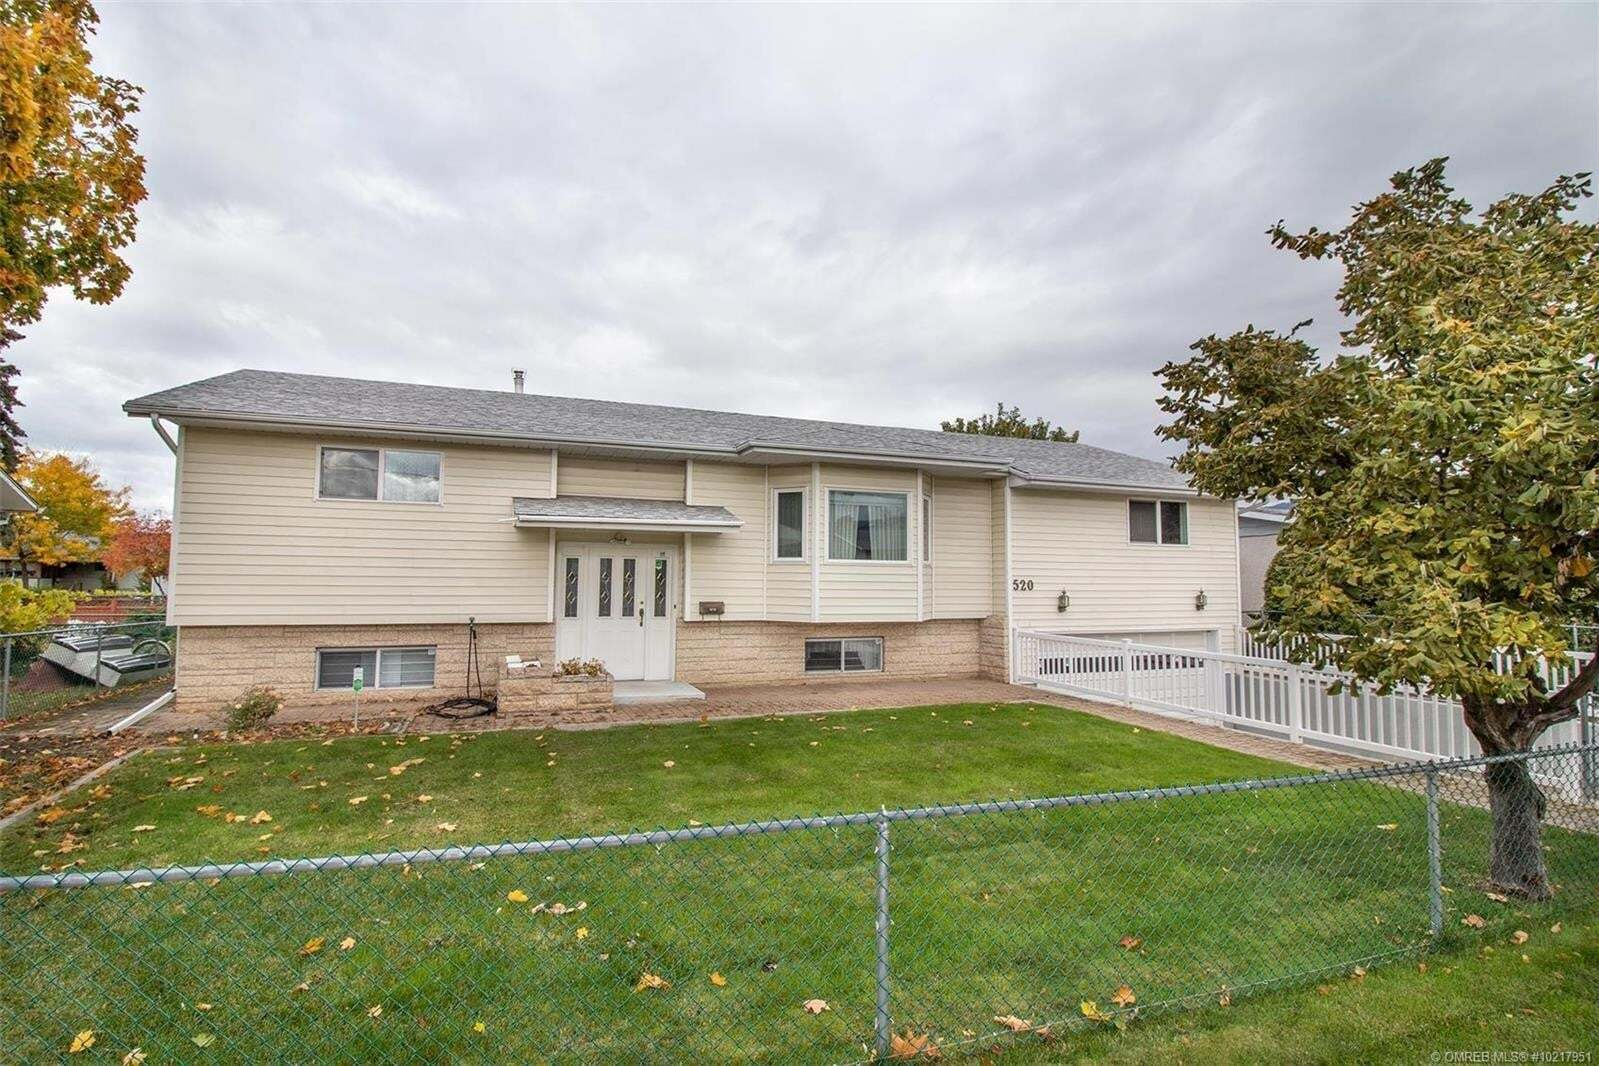 House for sale at 520 Mallach Rd Kelowna British Columbia - MLS: 10217951